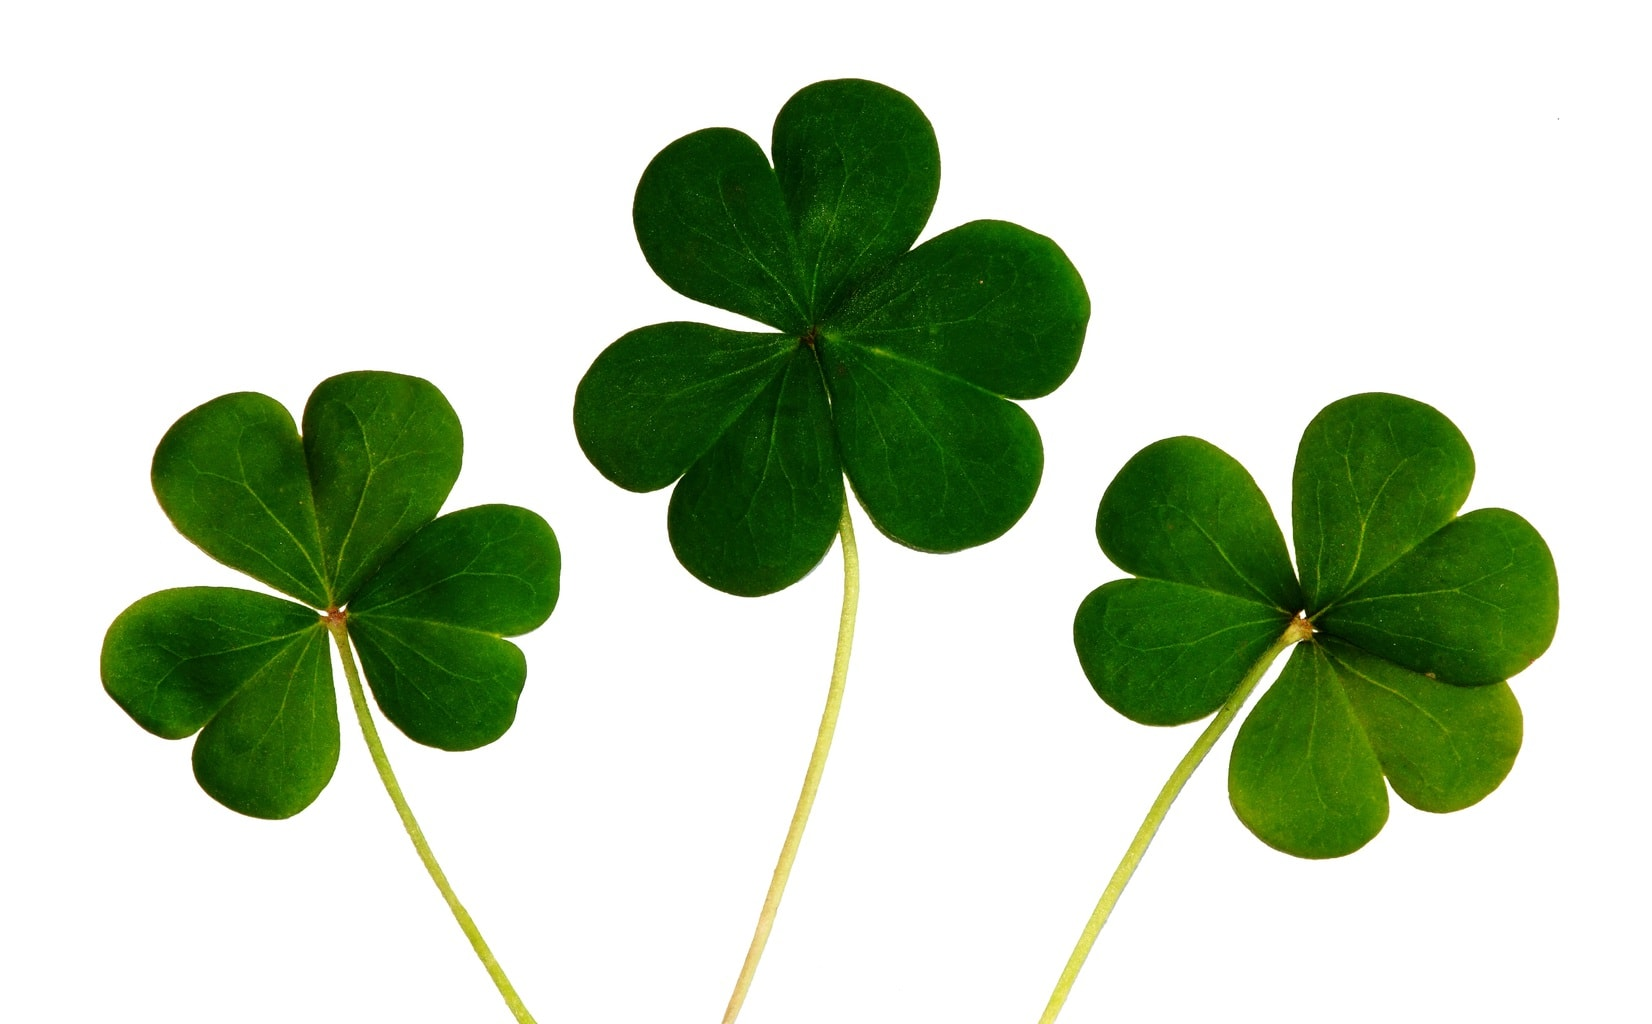 Clovers for st patrick's day - cute st patrick's day outfits